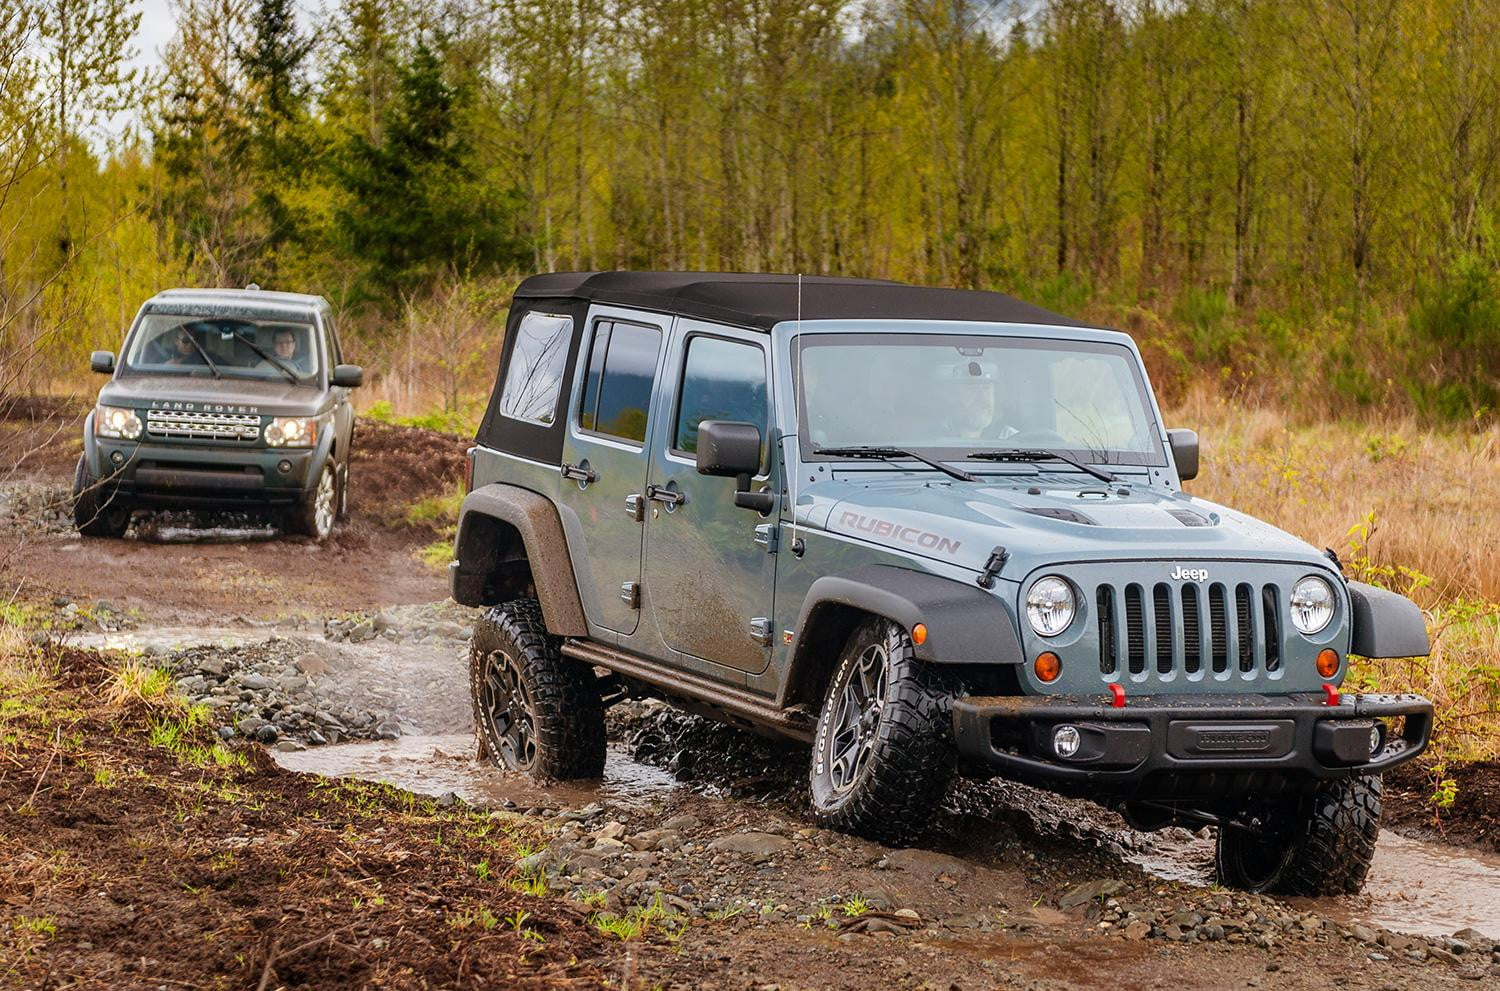 Tysons Koons Jeep Home » Difference Between 2013 And 2014 Jeep Wrangler Unlimited